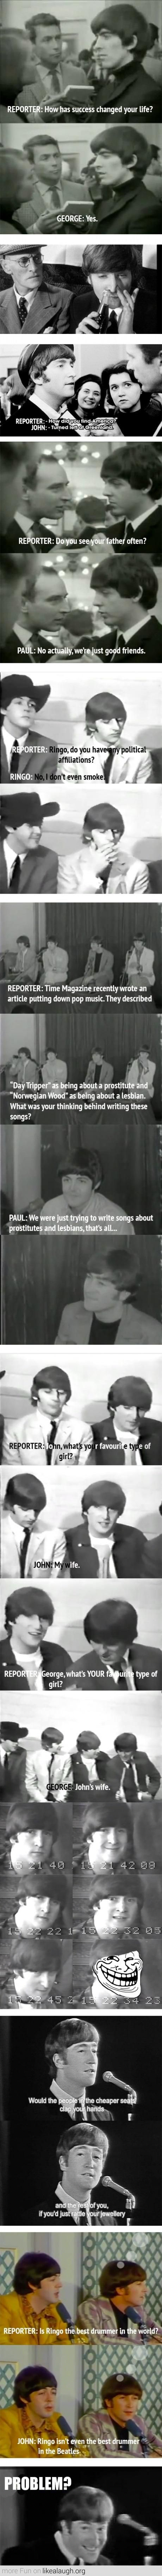 The Beatles were trolling before it was cool